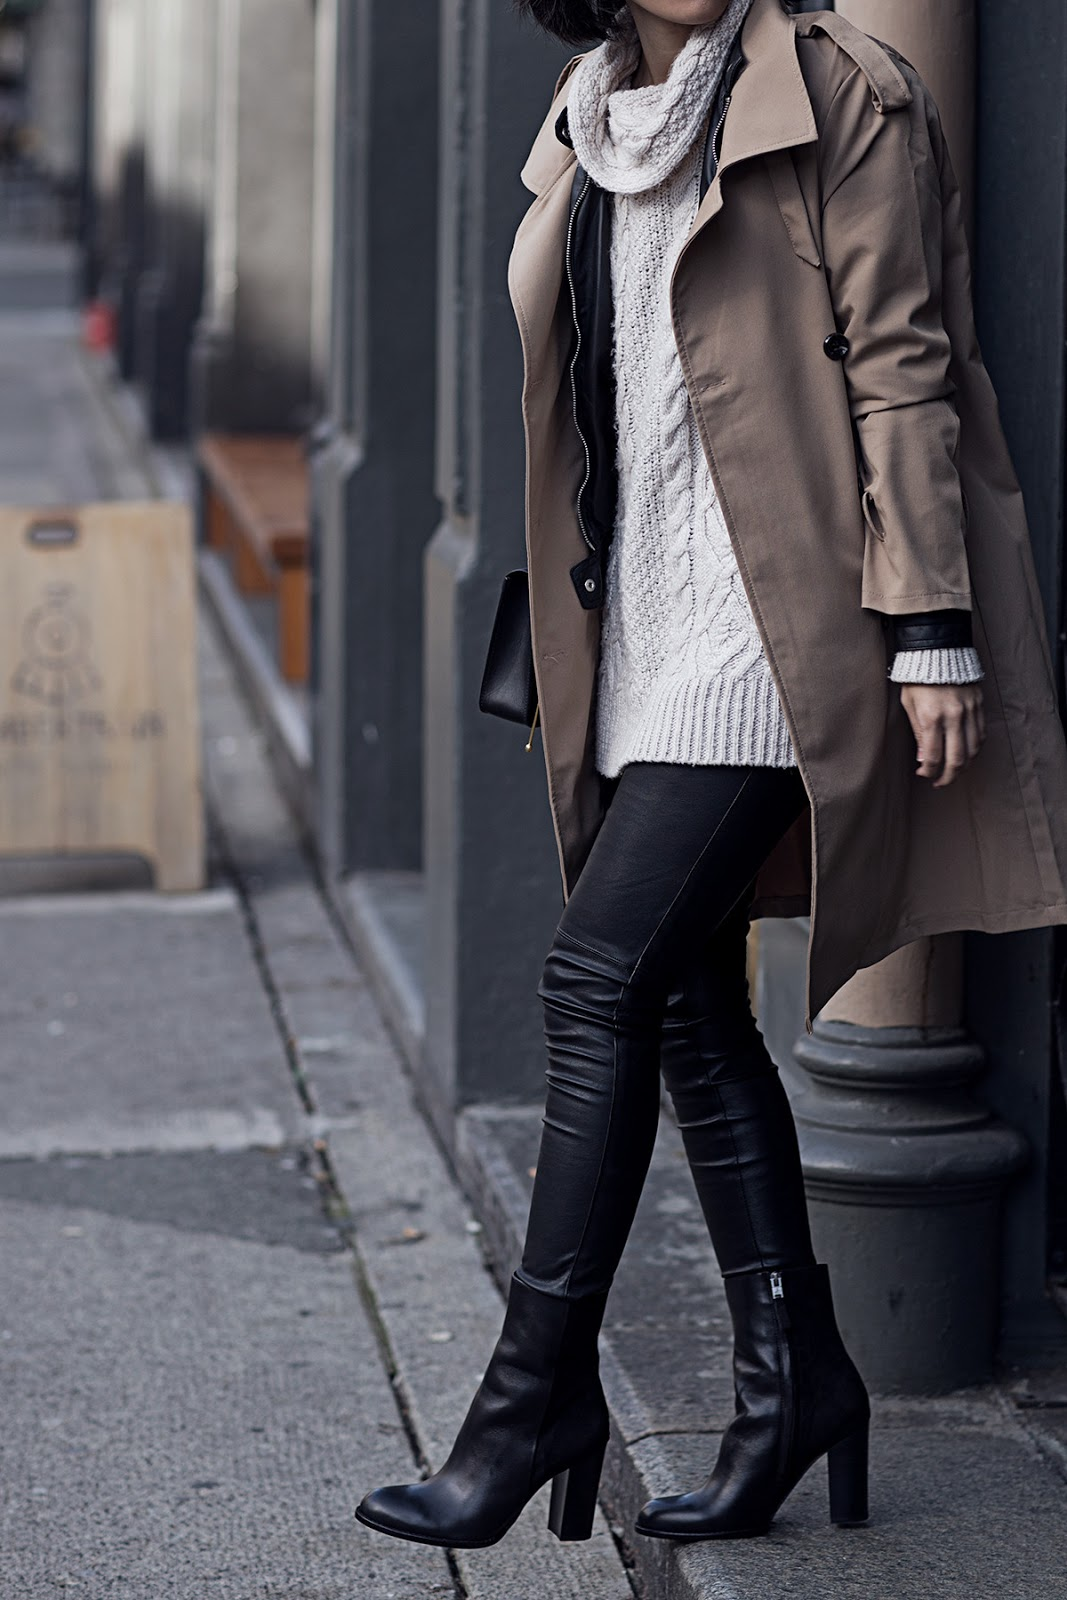 This classic brown trench coat looks edgy and sophisticated worn with leather leggings and heeled ankle boots. Via Claire Liu. Sweater: Zara, Jacket: Vero Moda, Coat: Korean brand, Leggings: H&M, Boots: Sam Edelman.